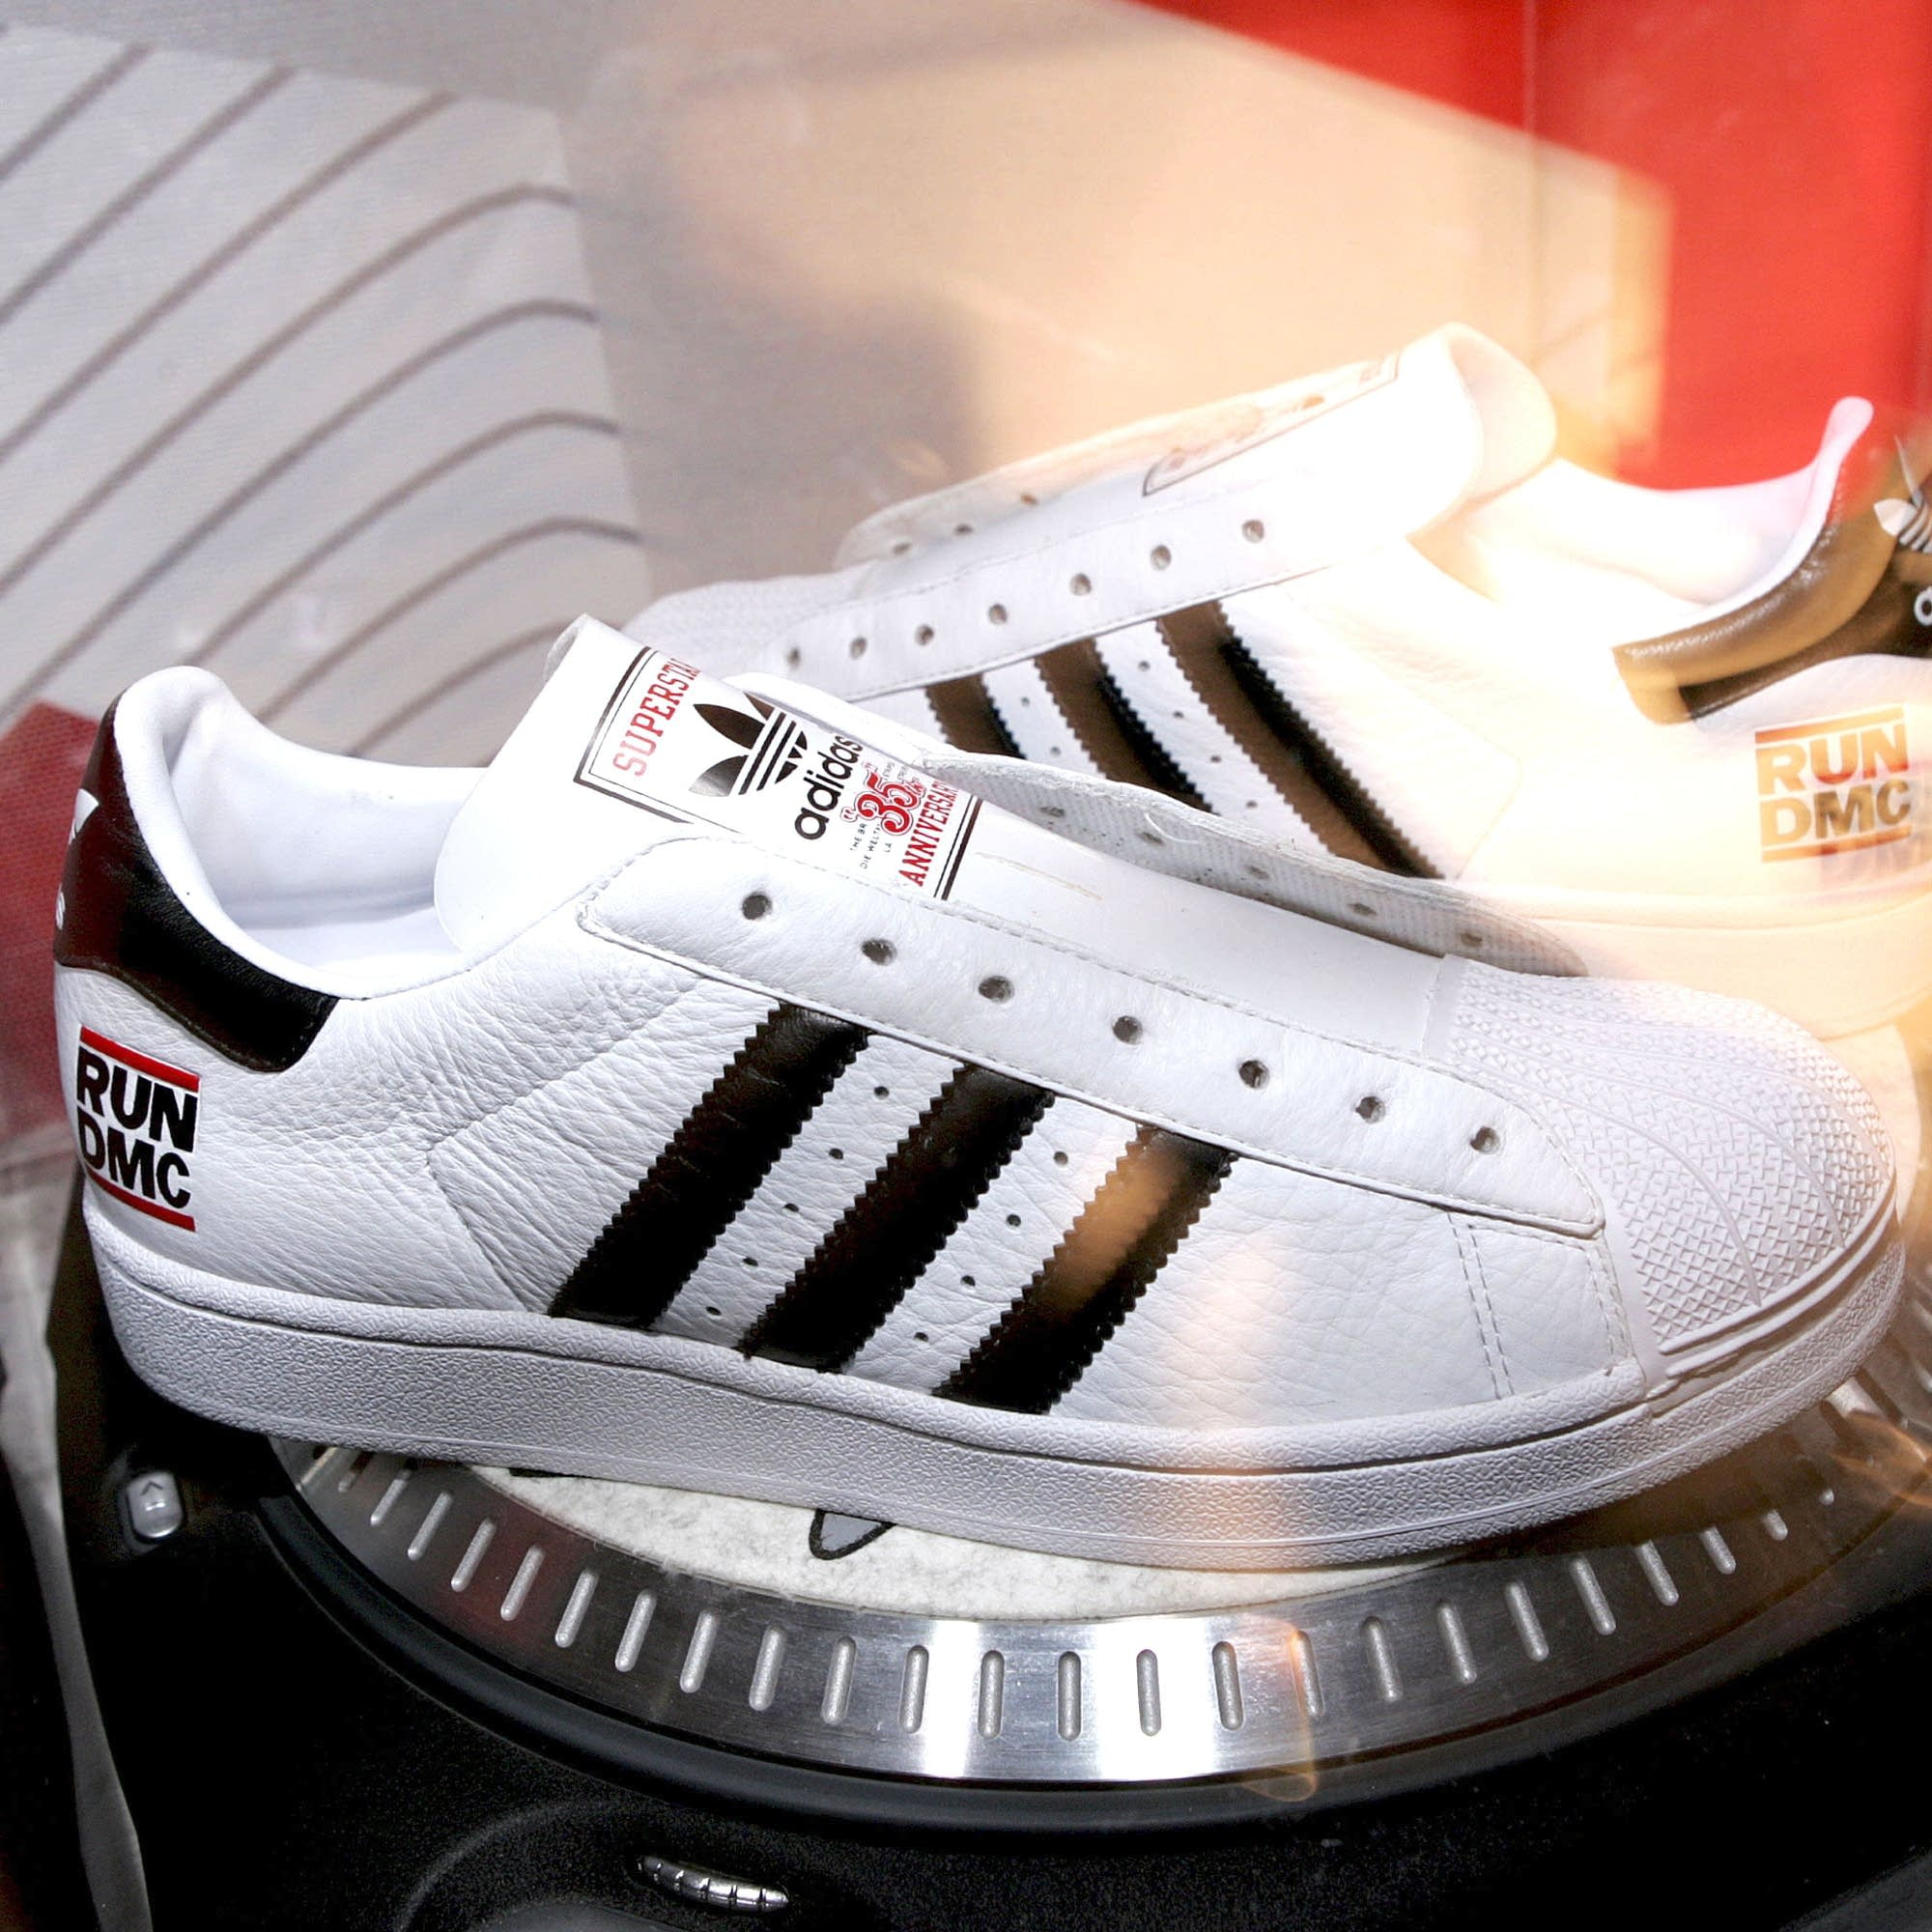 A pair of Adidas sneakers at a 2005 event honoring Jam Master Jay.